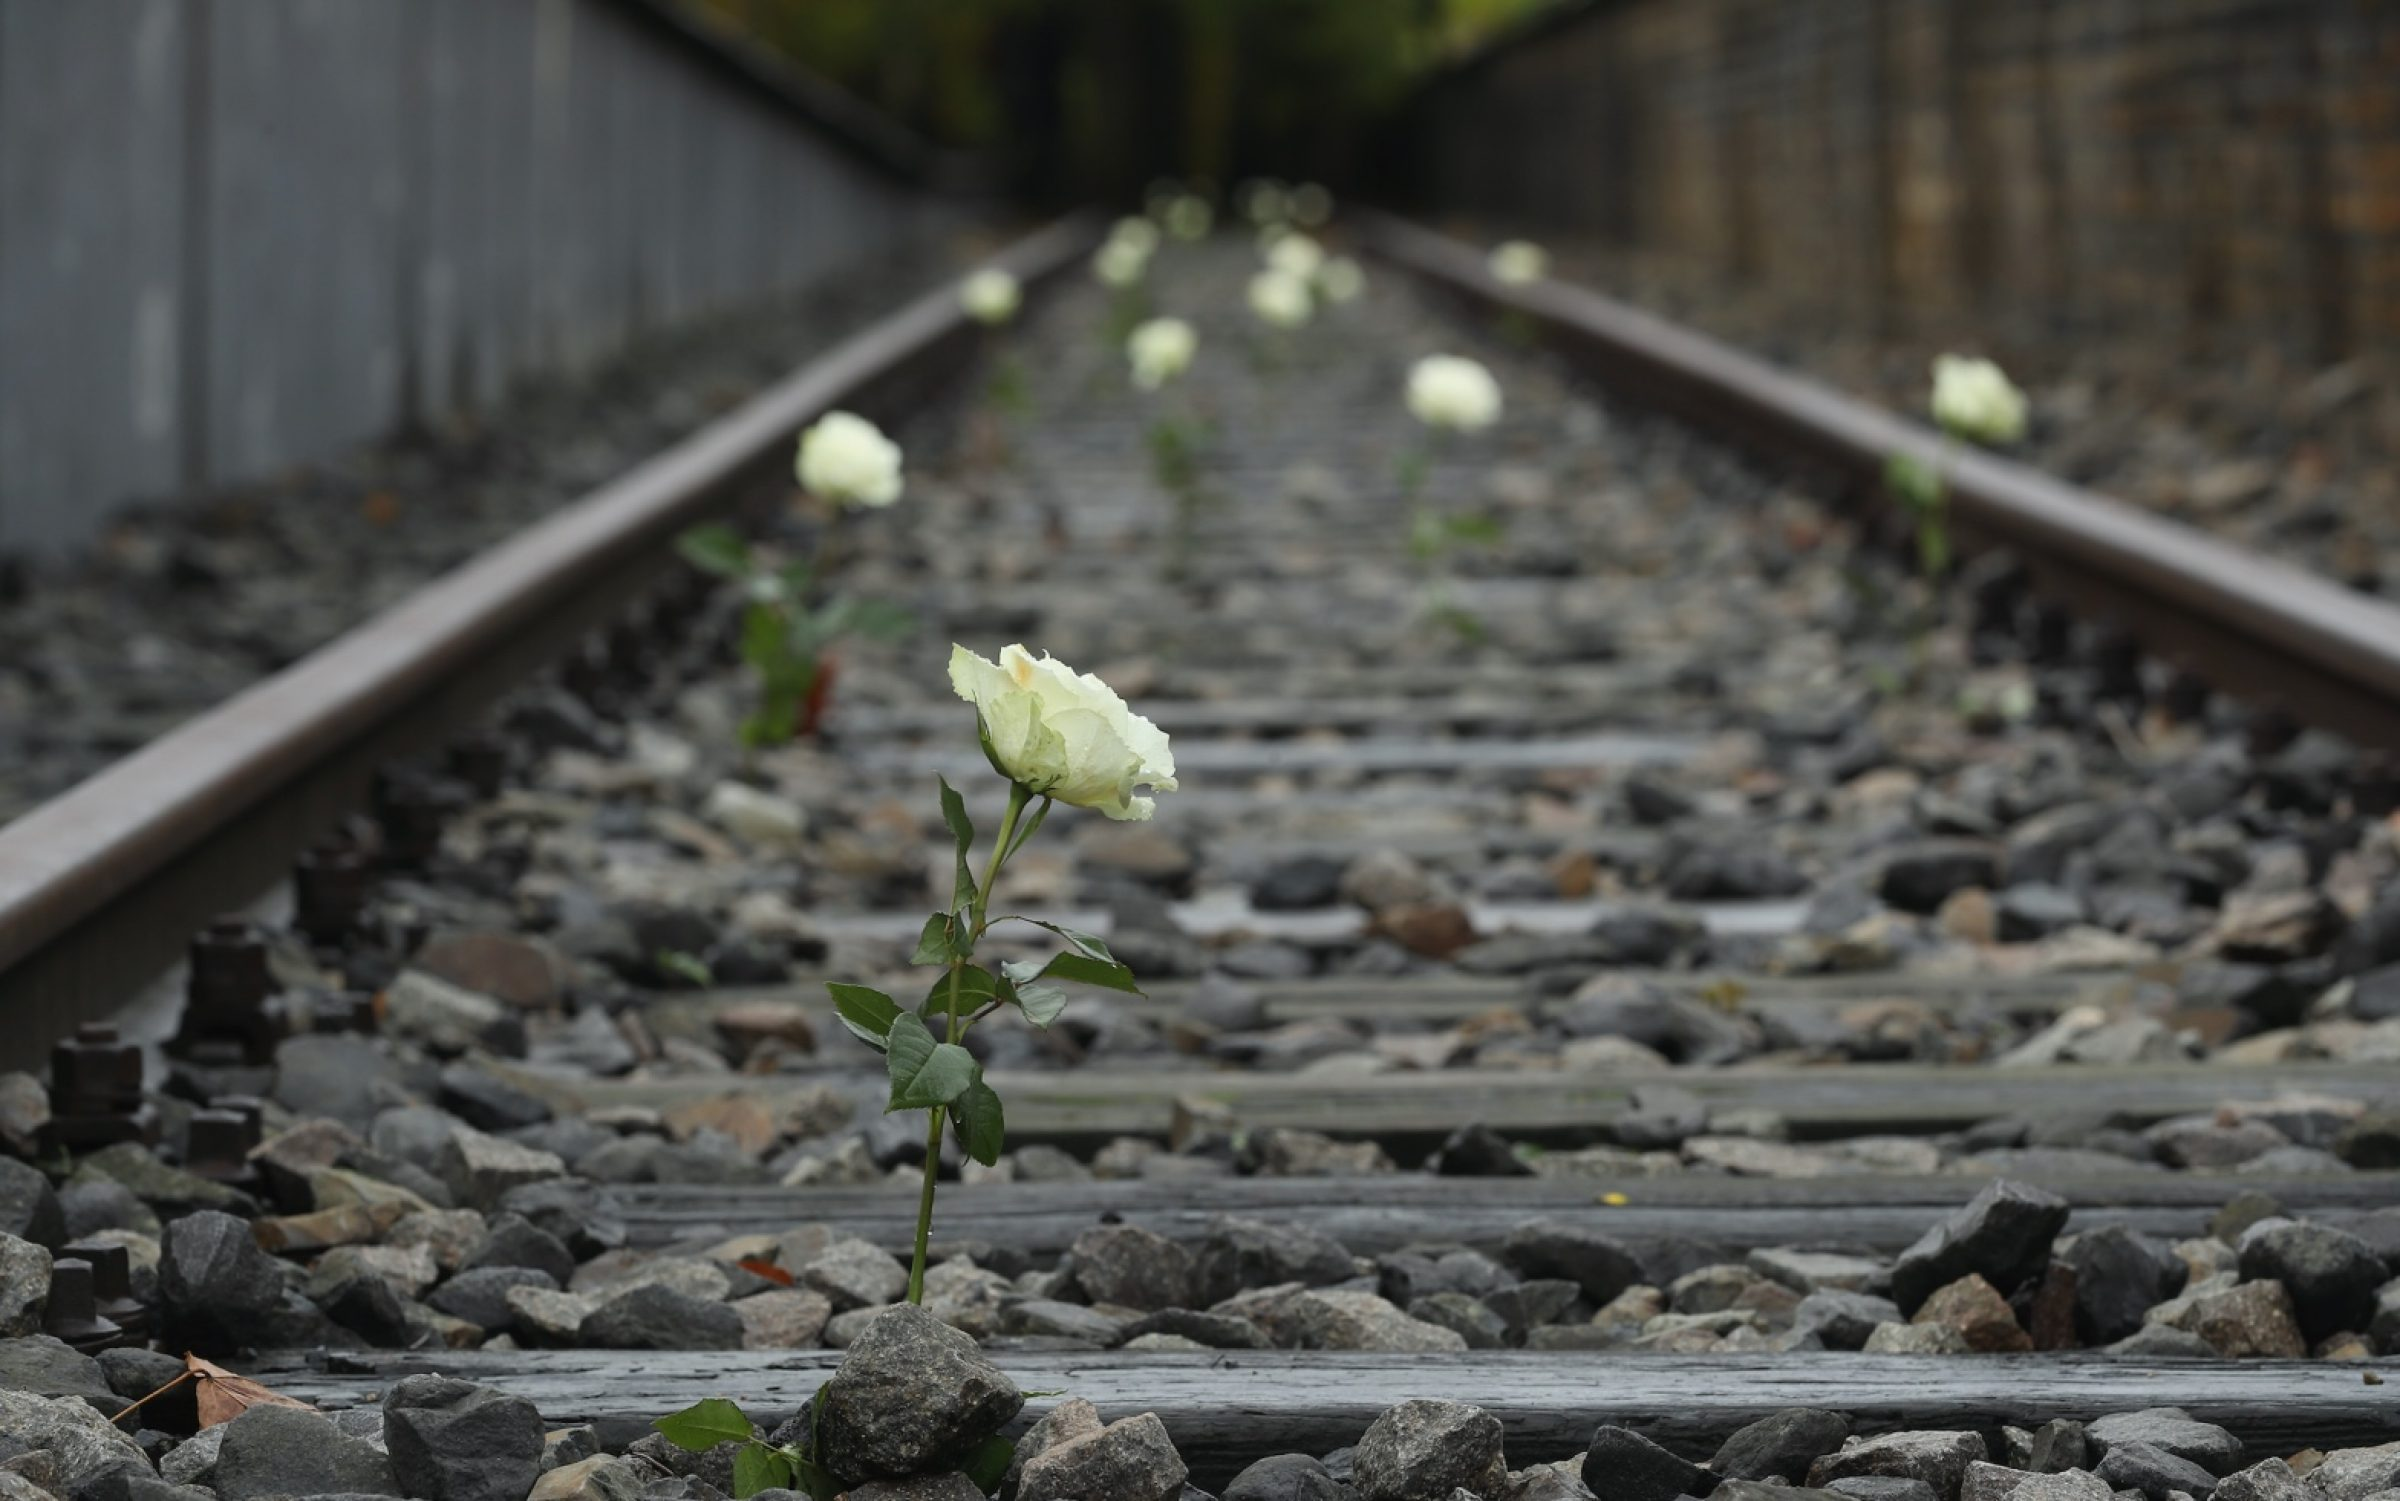 A white rose planted on Track 19, a memorial to commemorate the transportation of Berlin Jews to concentration camps during the Second World War. Credit: Sean Gallup / Getty Images.